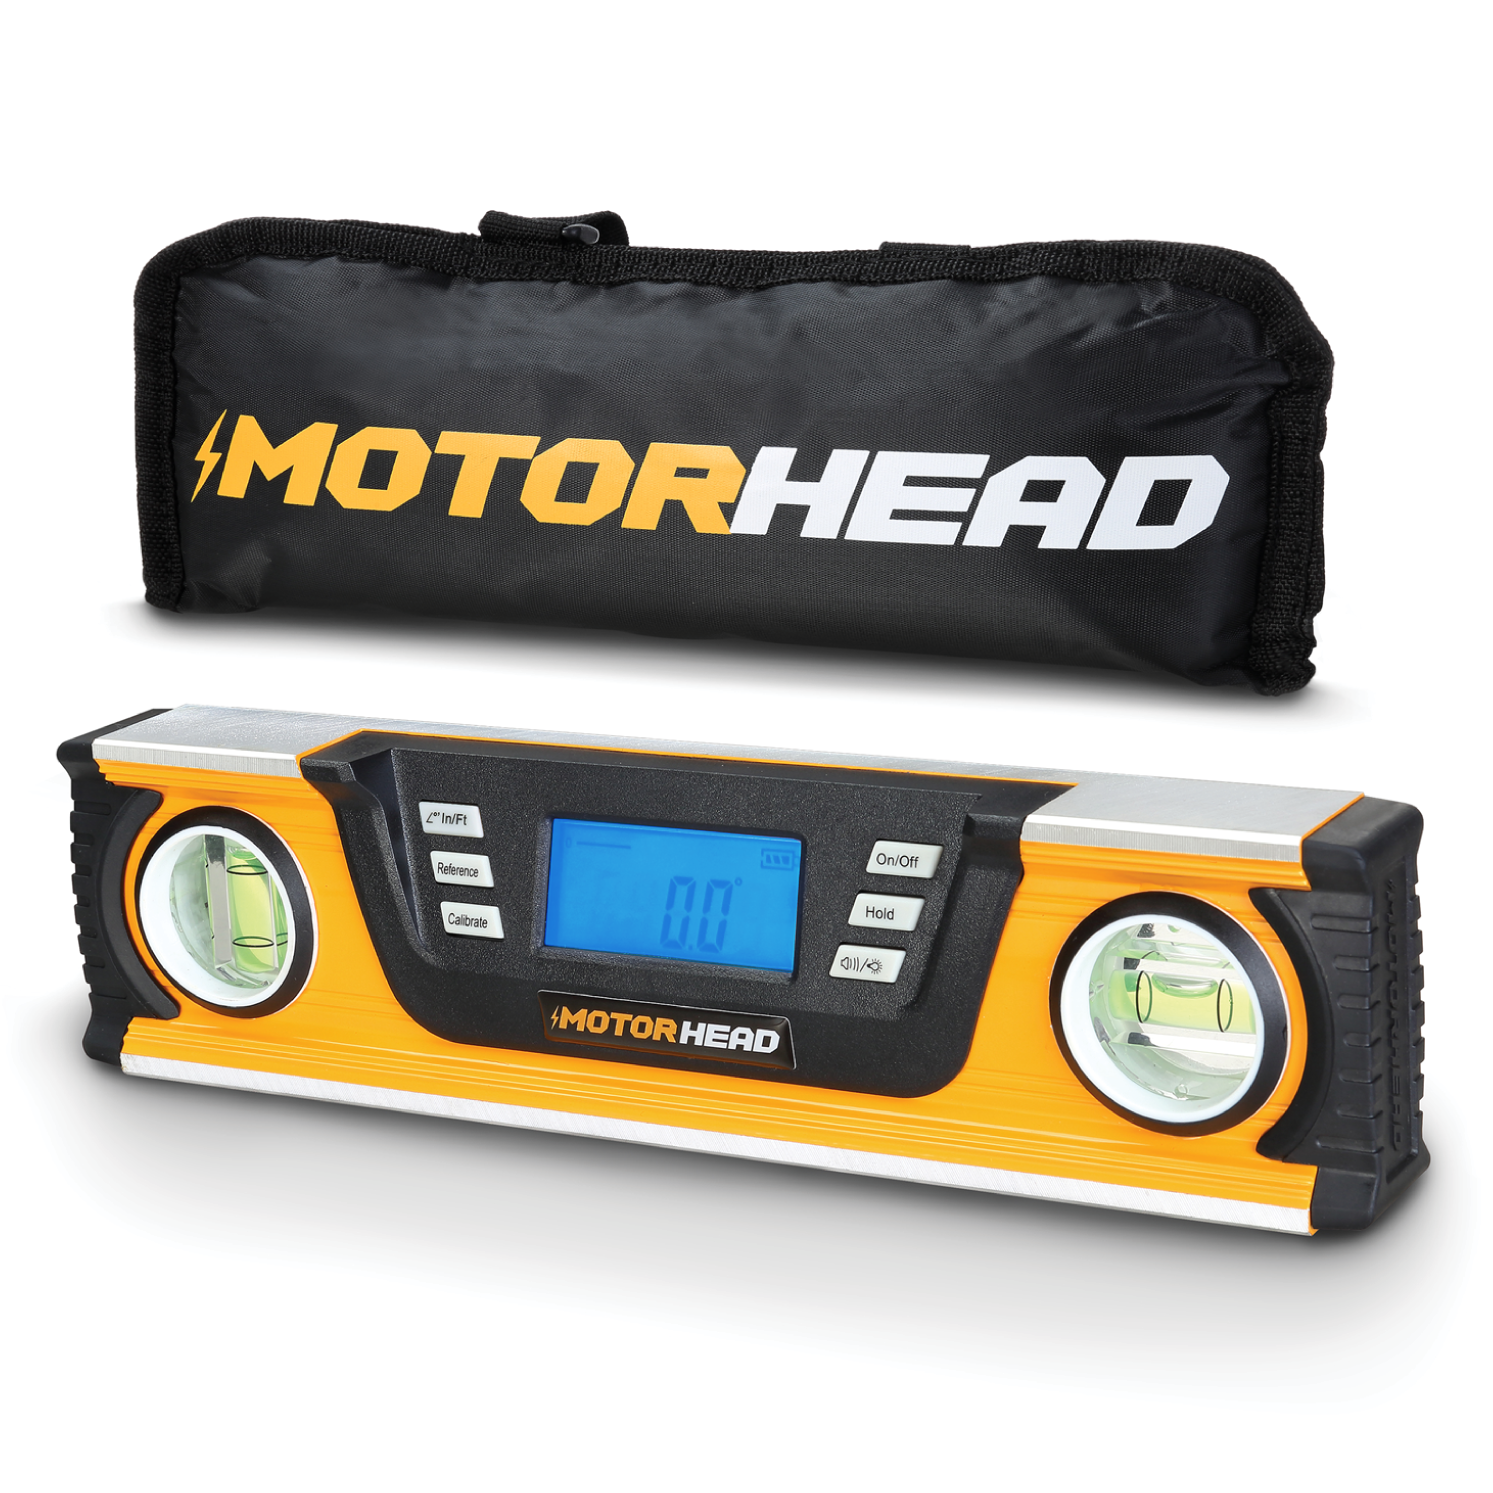 Smart Digital Torpedo Level - Measuring Tools - MOTORHEAD Tools